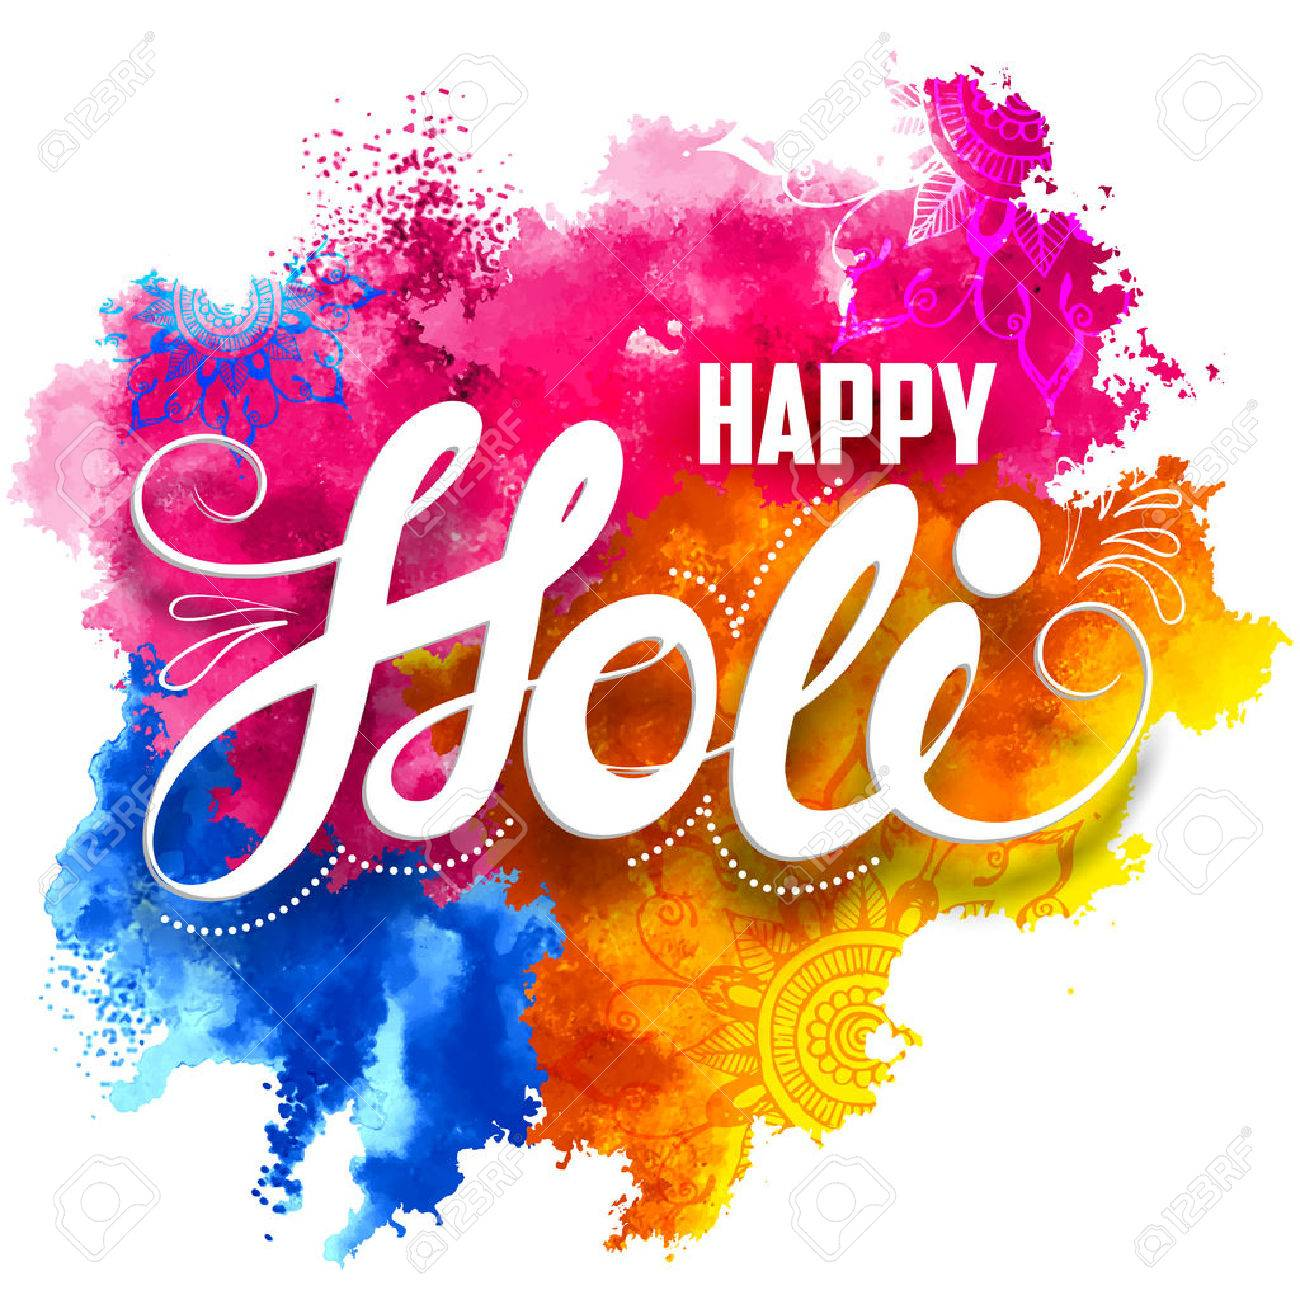 Illustration Of Abstract Colorful Happy Holi Background Royalty Free